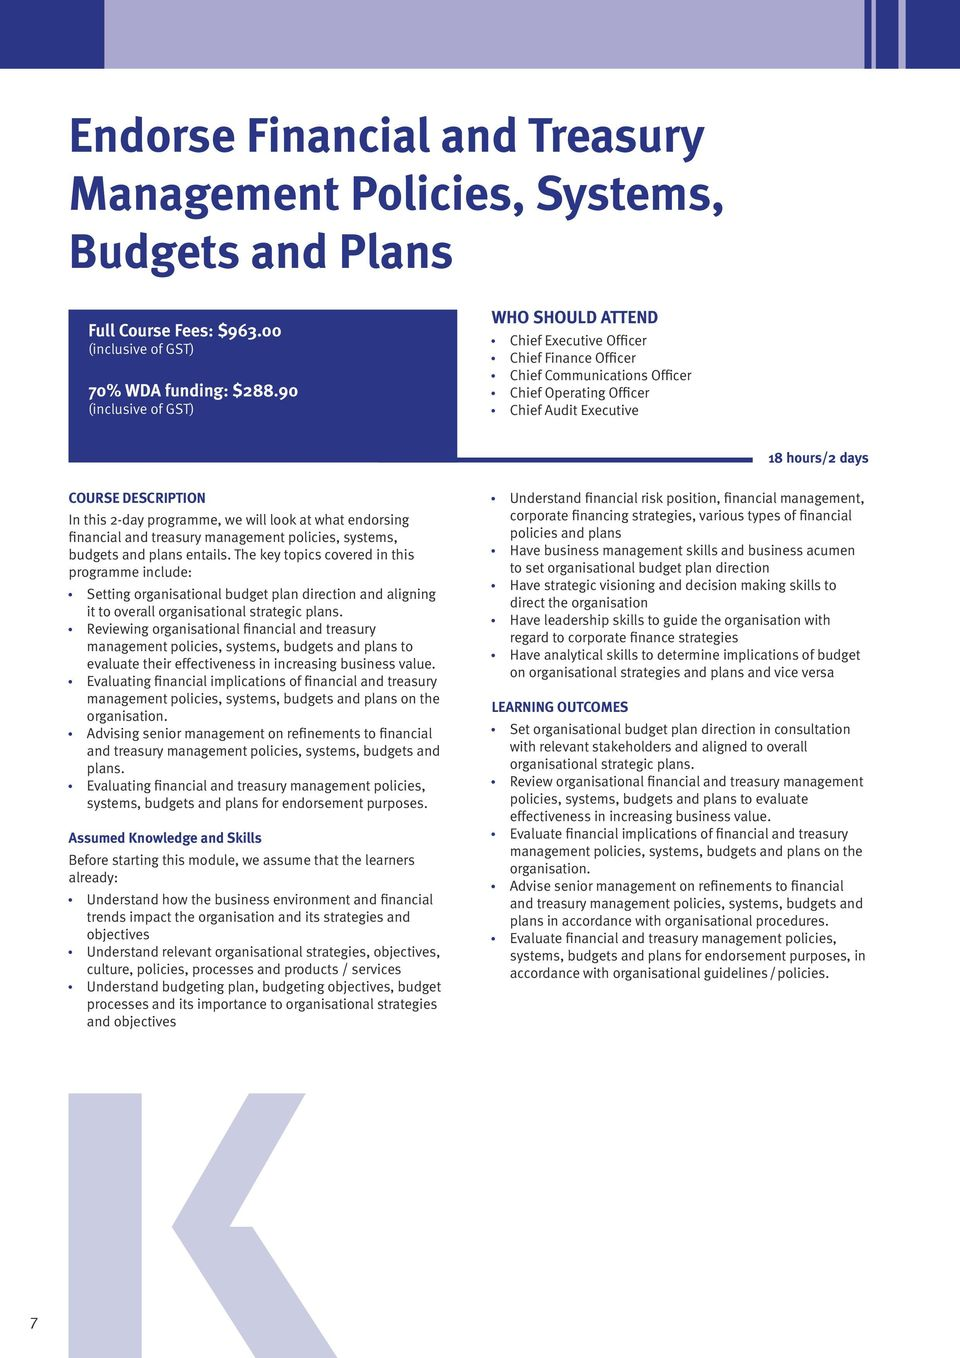 financial and treasury management policies, systems, budgets and plans entails.